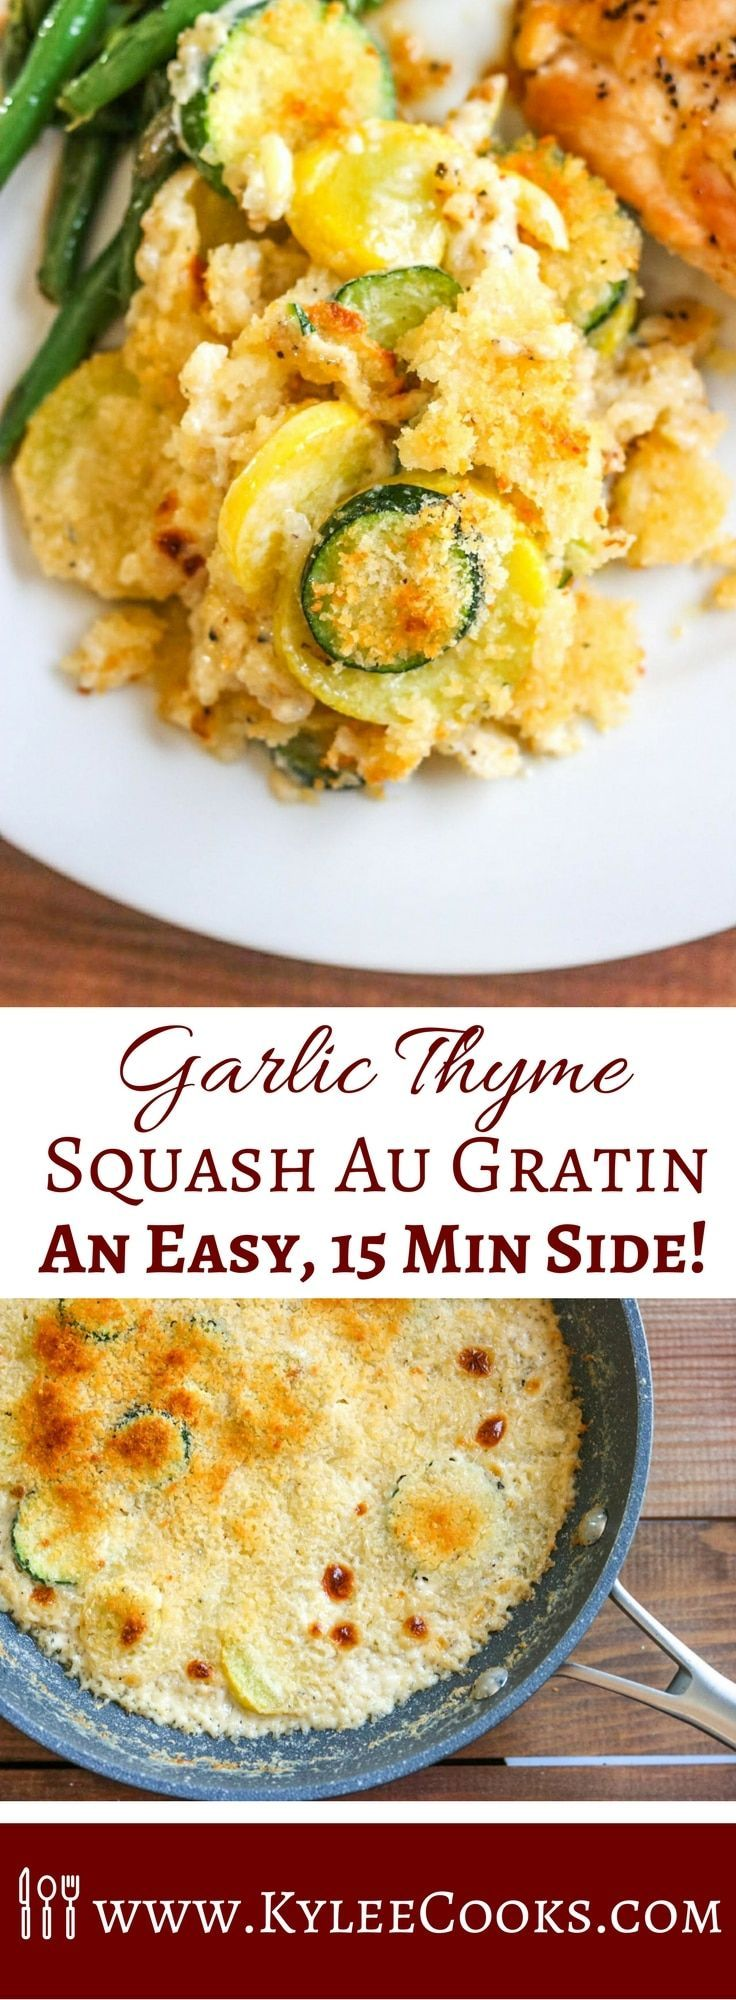 A very easy side, this Garlic Thyme Squash au Gratin comes together quickly while you cook other things! Decadent, creamy and garlicky - this will be the star of any dinner! via @kyleecooks